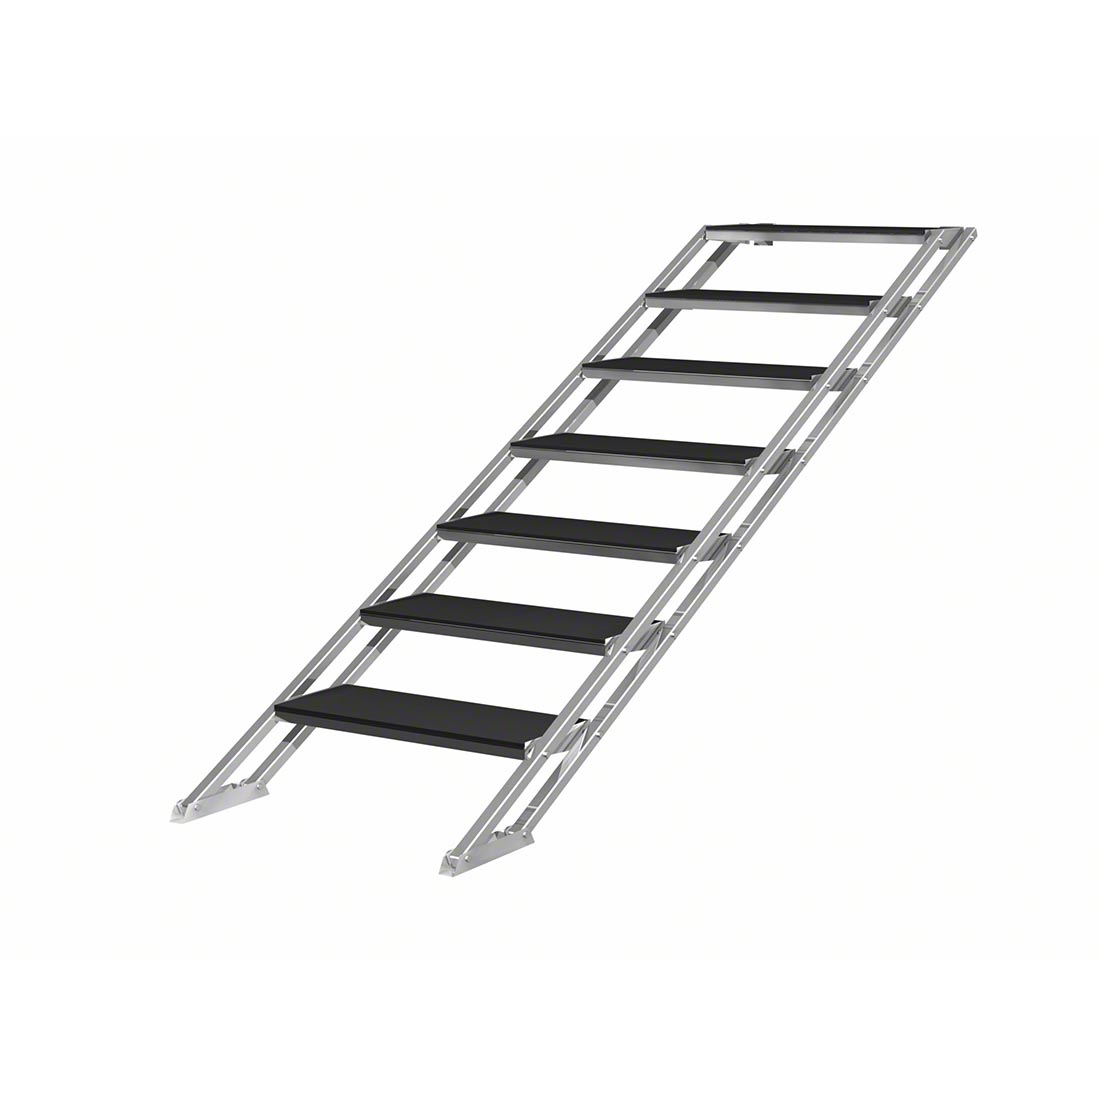 Pro Flex Seven-Step Adjustable Stairs for Stages 39.5